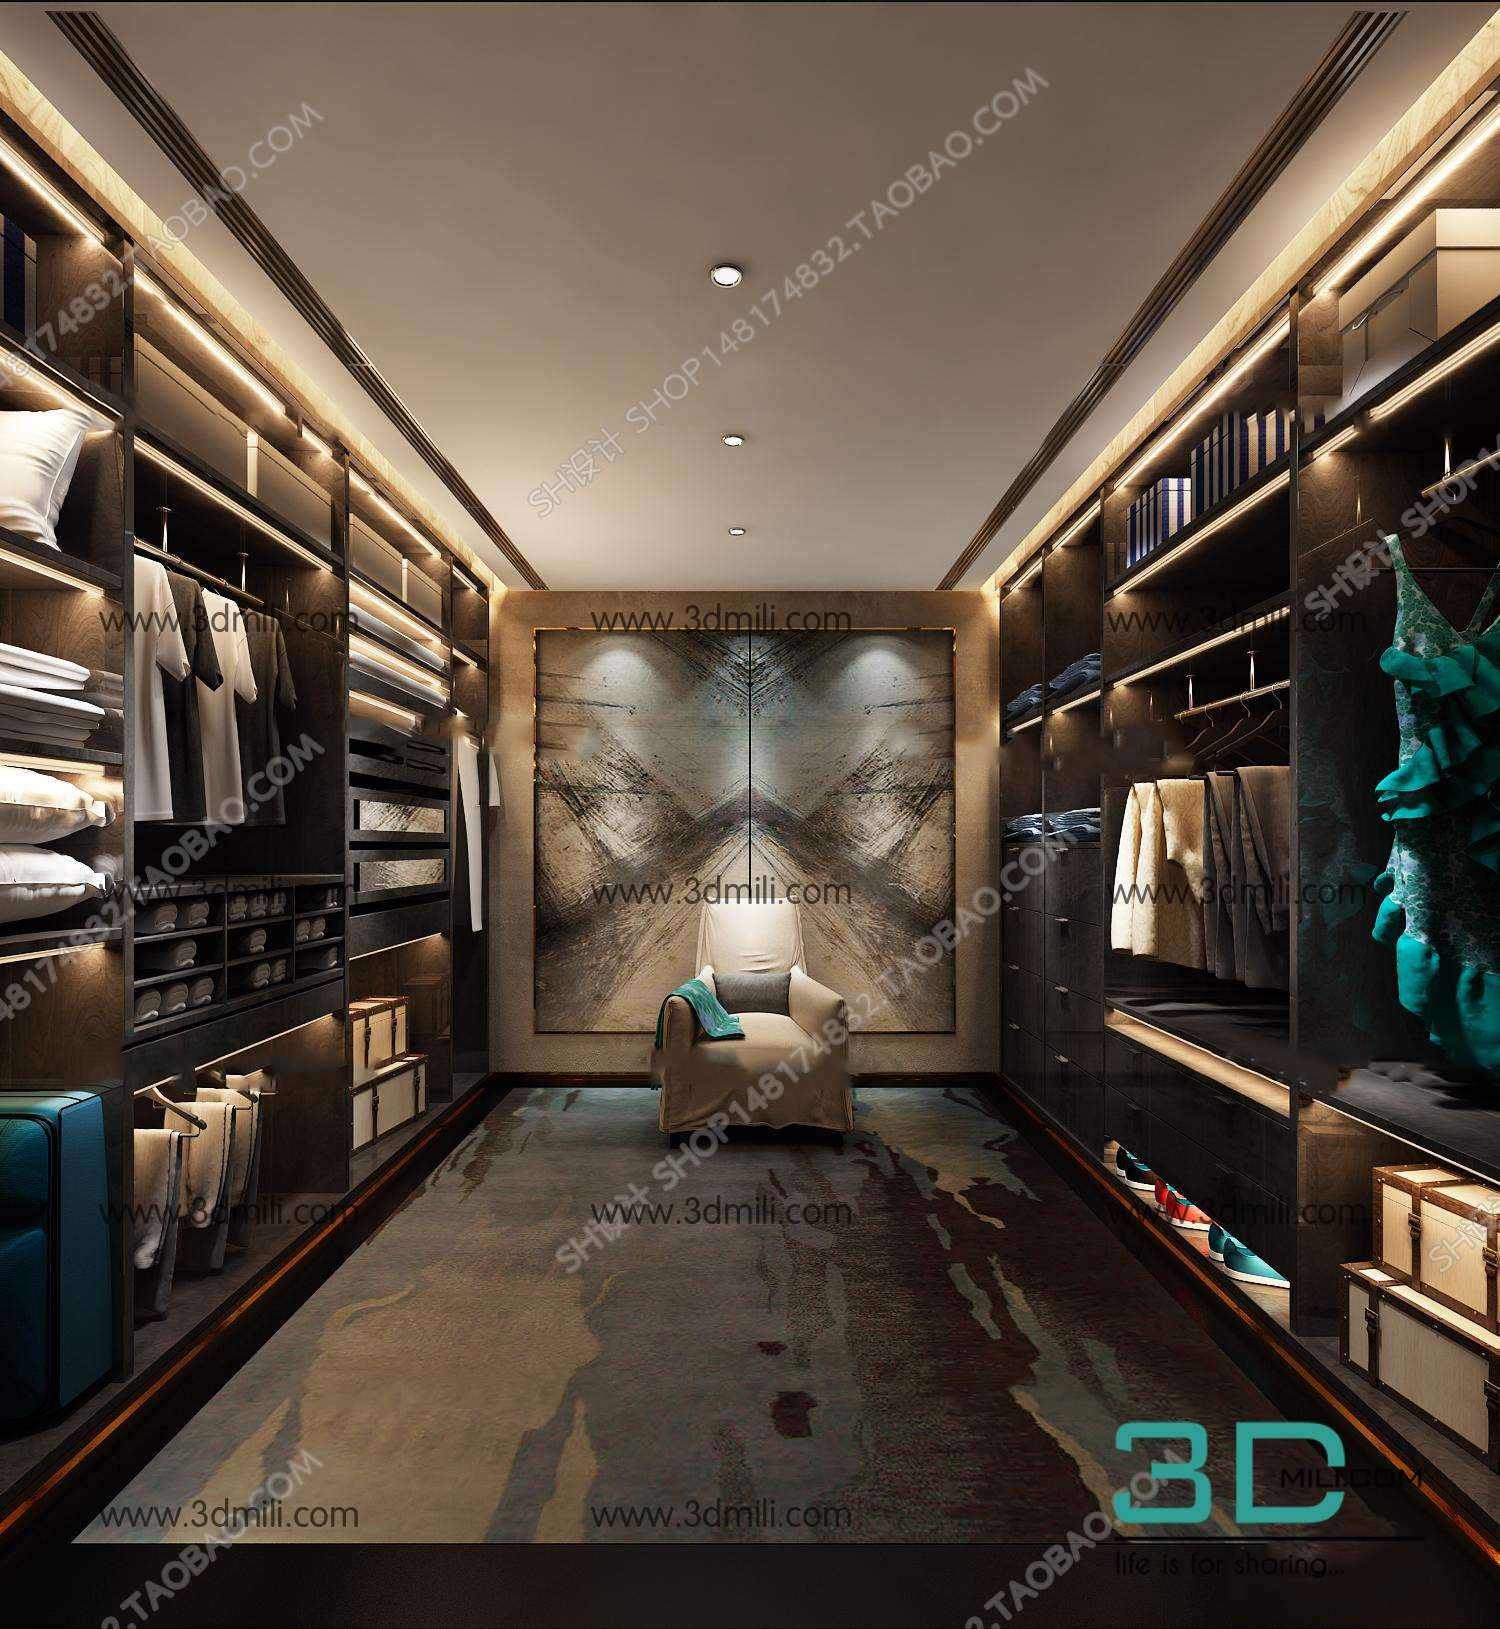 Model De Dressing 17 Sell Album Dressing Room 3d Mili Download 3d Model Free 3d Models 3d Model Download